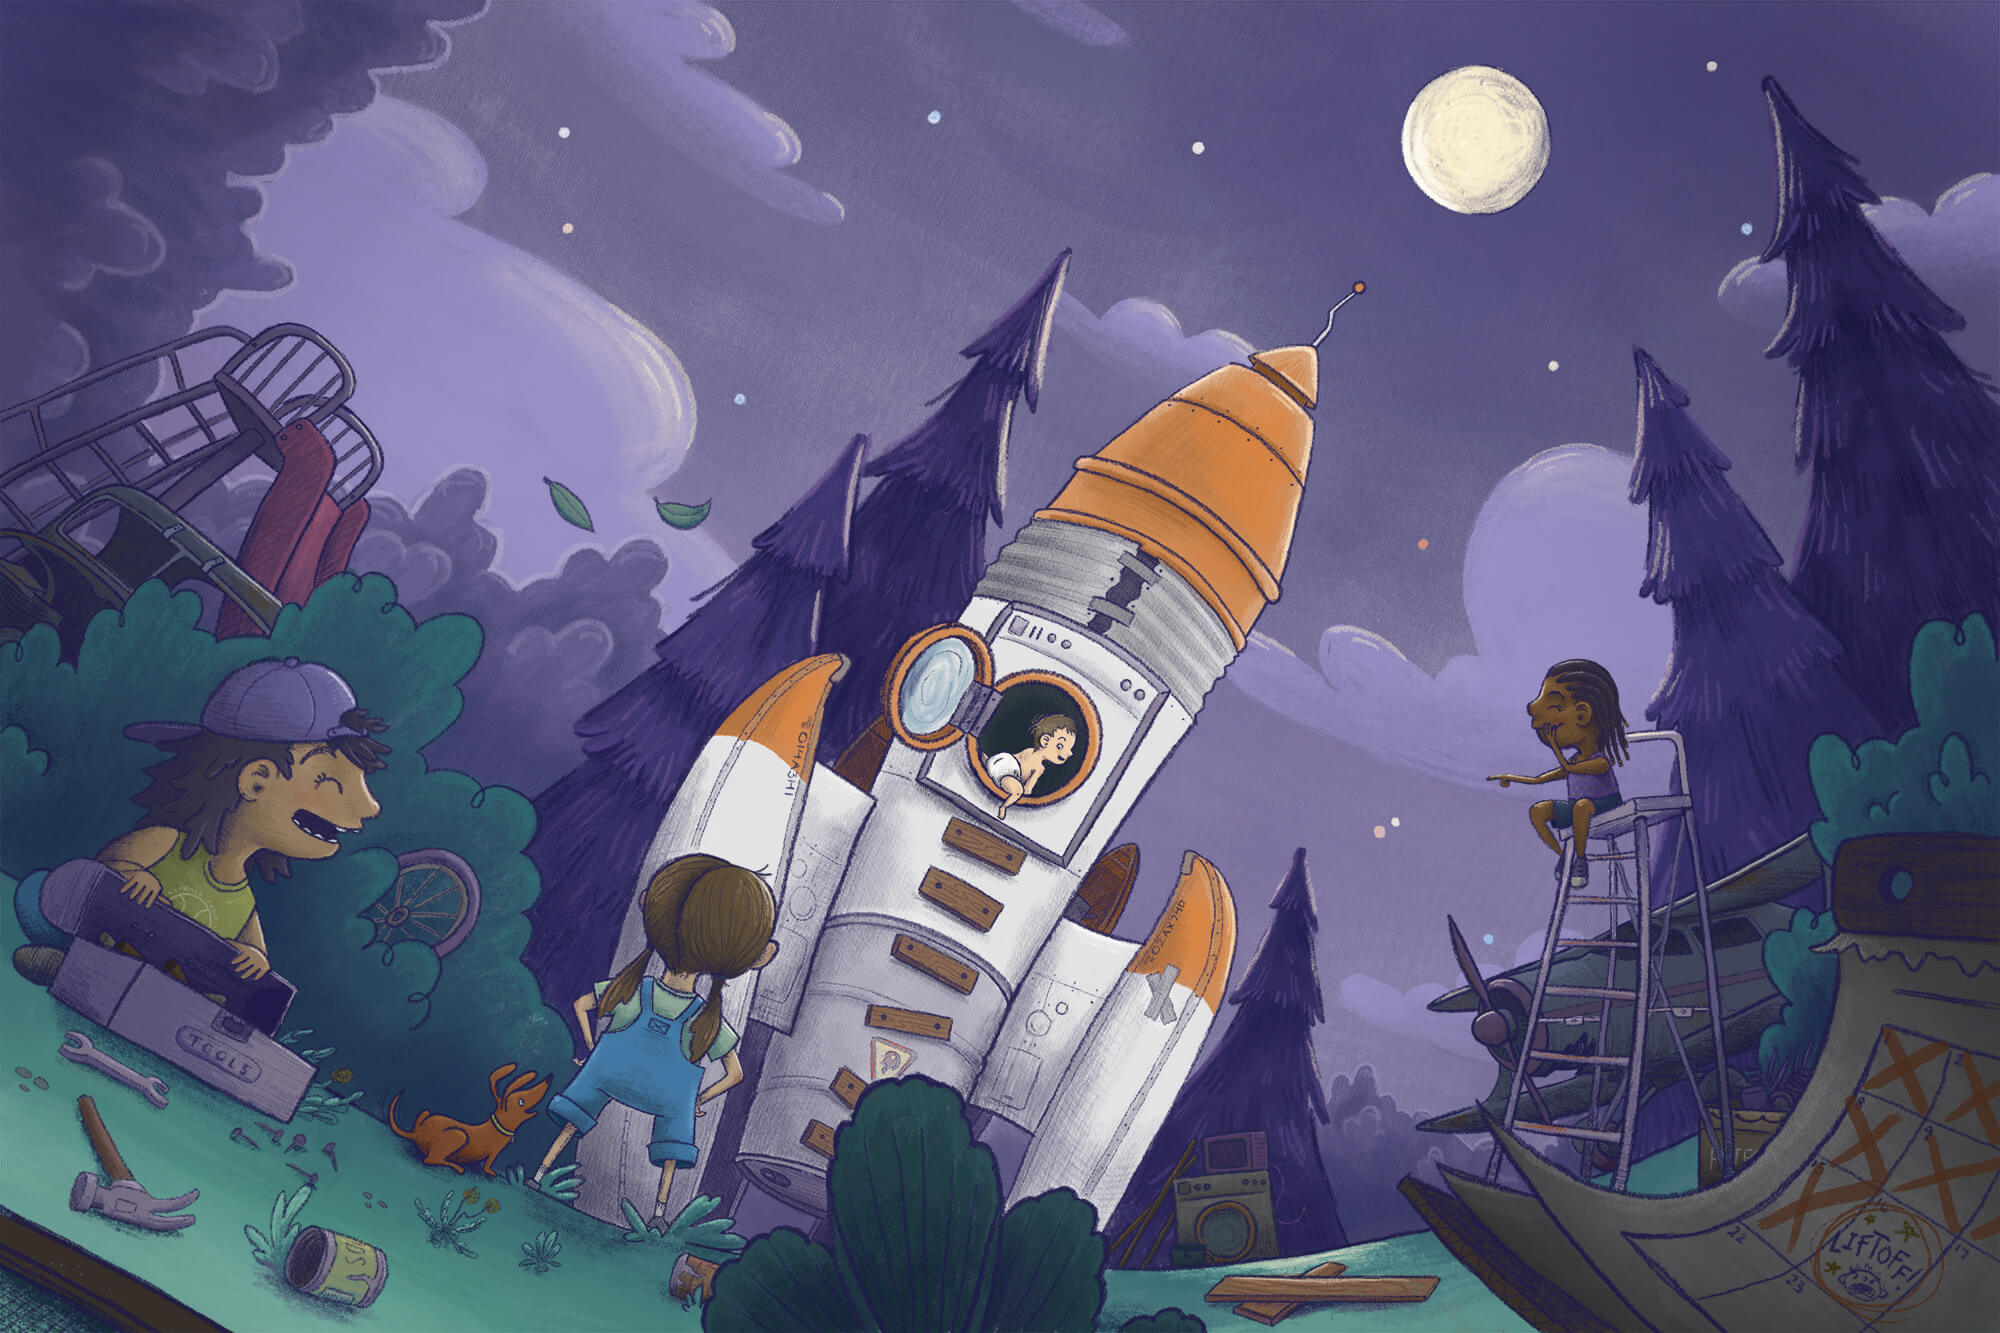 whimsical children's illustration of children constructing a rocket out of junk